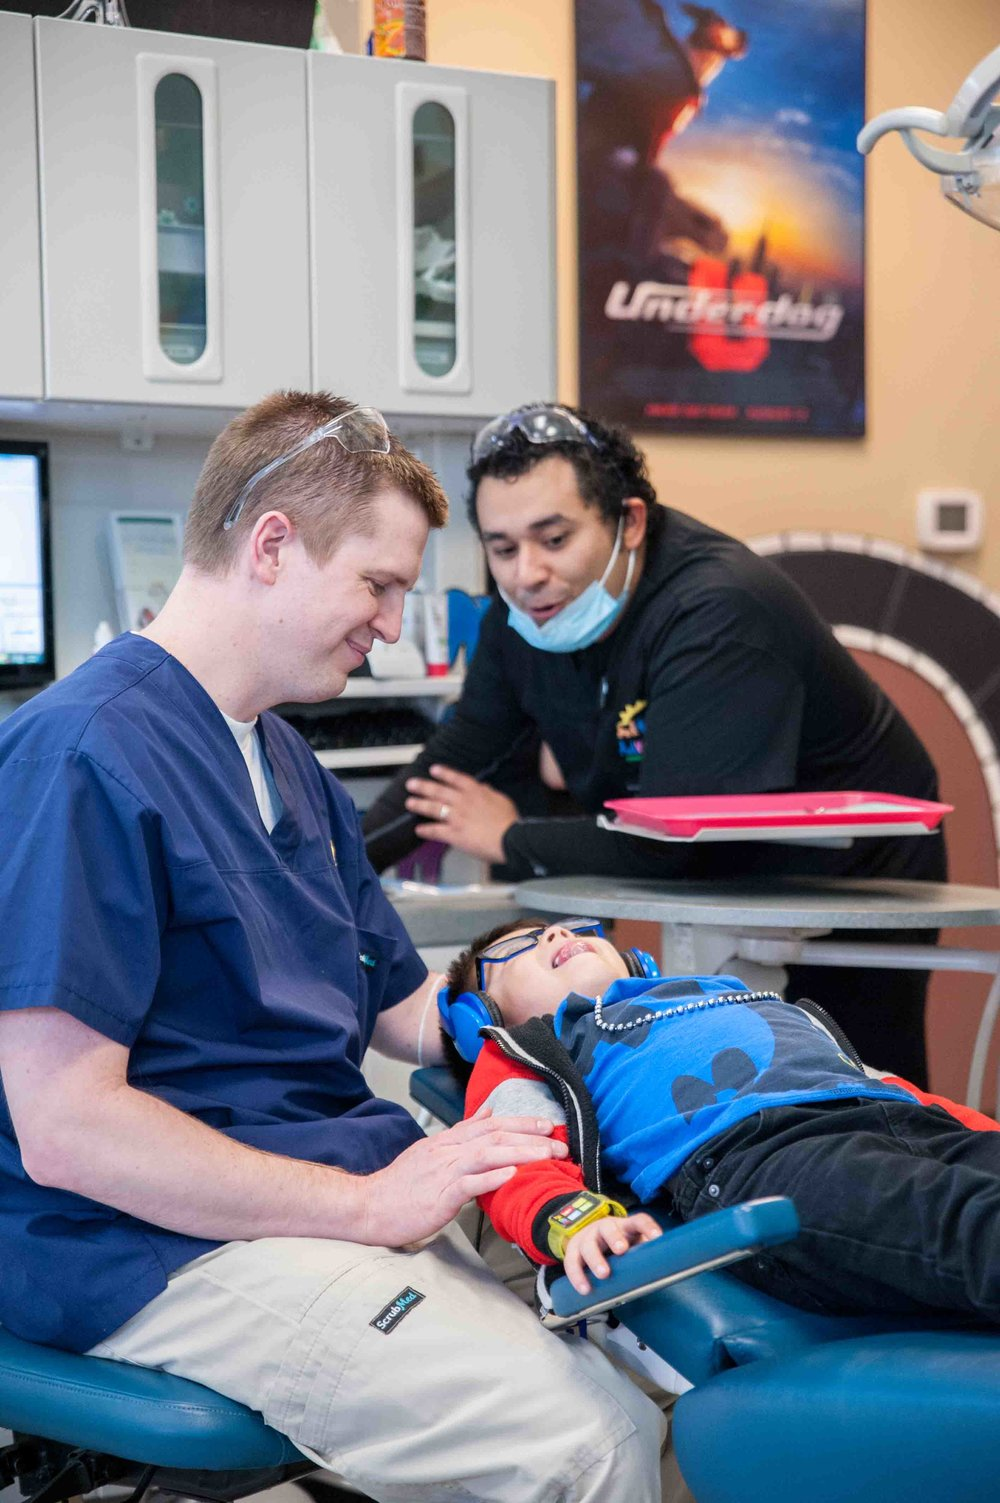 Advanced Pediatric Dentistry Pasco hermiston kids Dentist and orthodontist braces care pediatric children walla walla Tri-cities tricities richmond hermiston pasco Kennewick-90.jpg